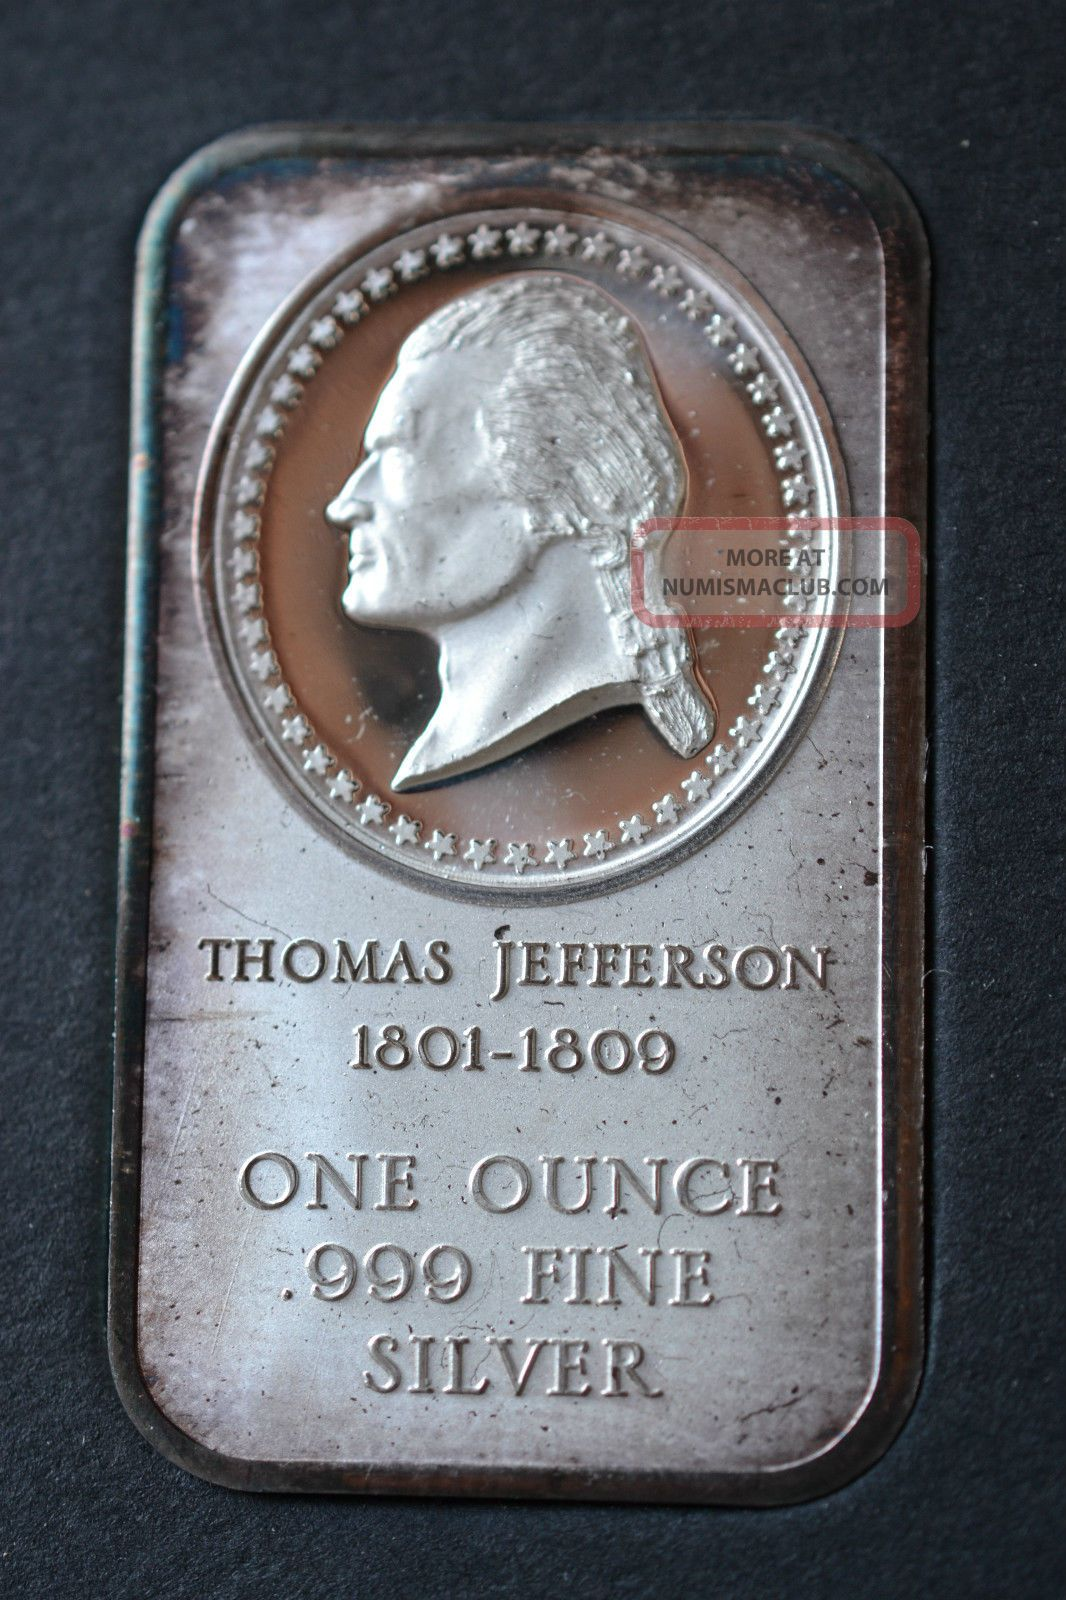 1801 1809 Thomas Jefferson 1 Ounce 999 Fine Silver Art